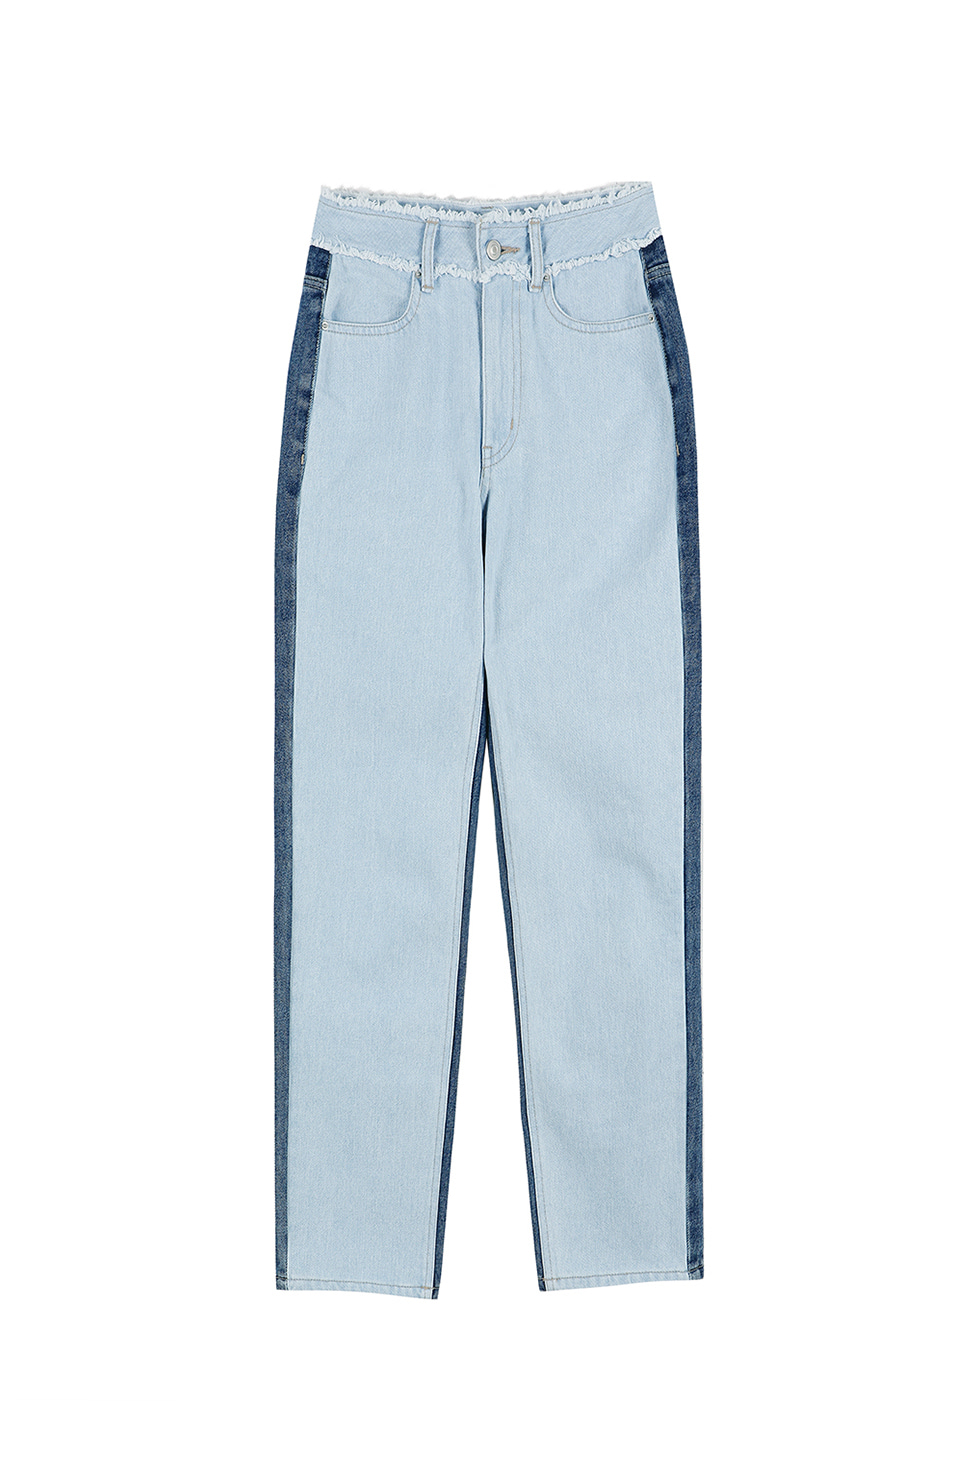 HIGH WAIST TWO-TONE PANTS - BLUE